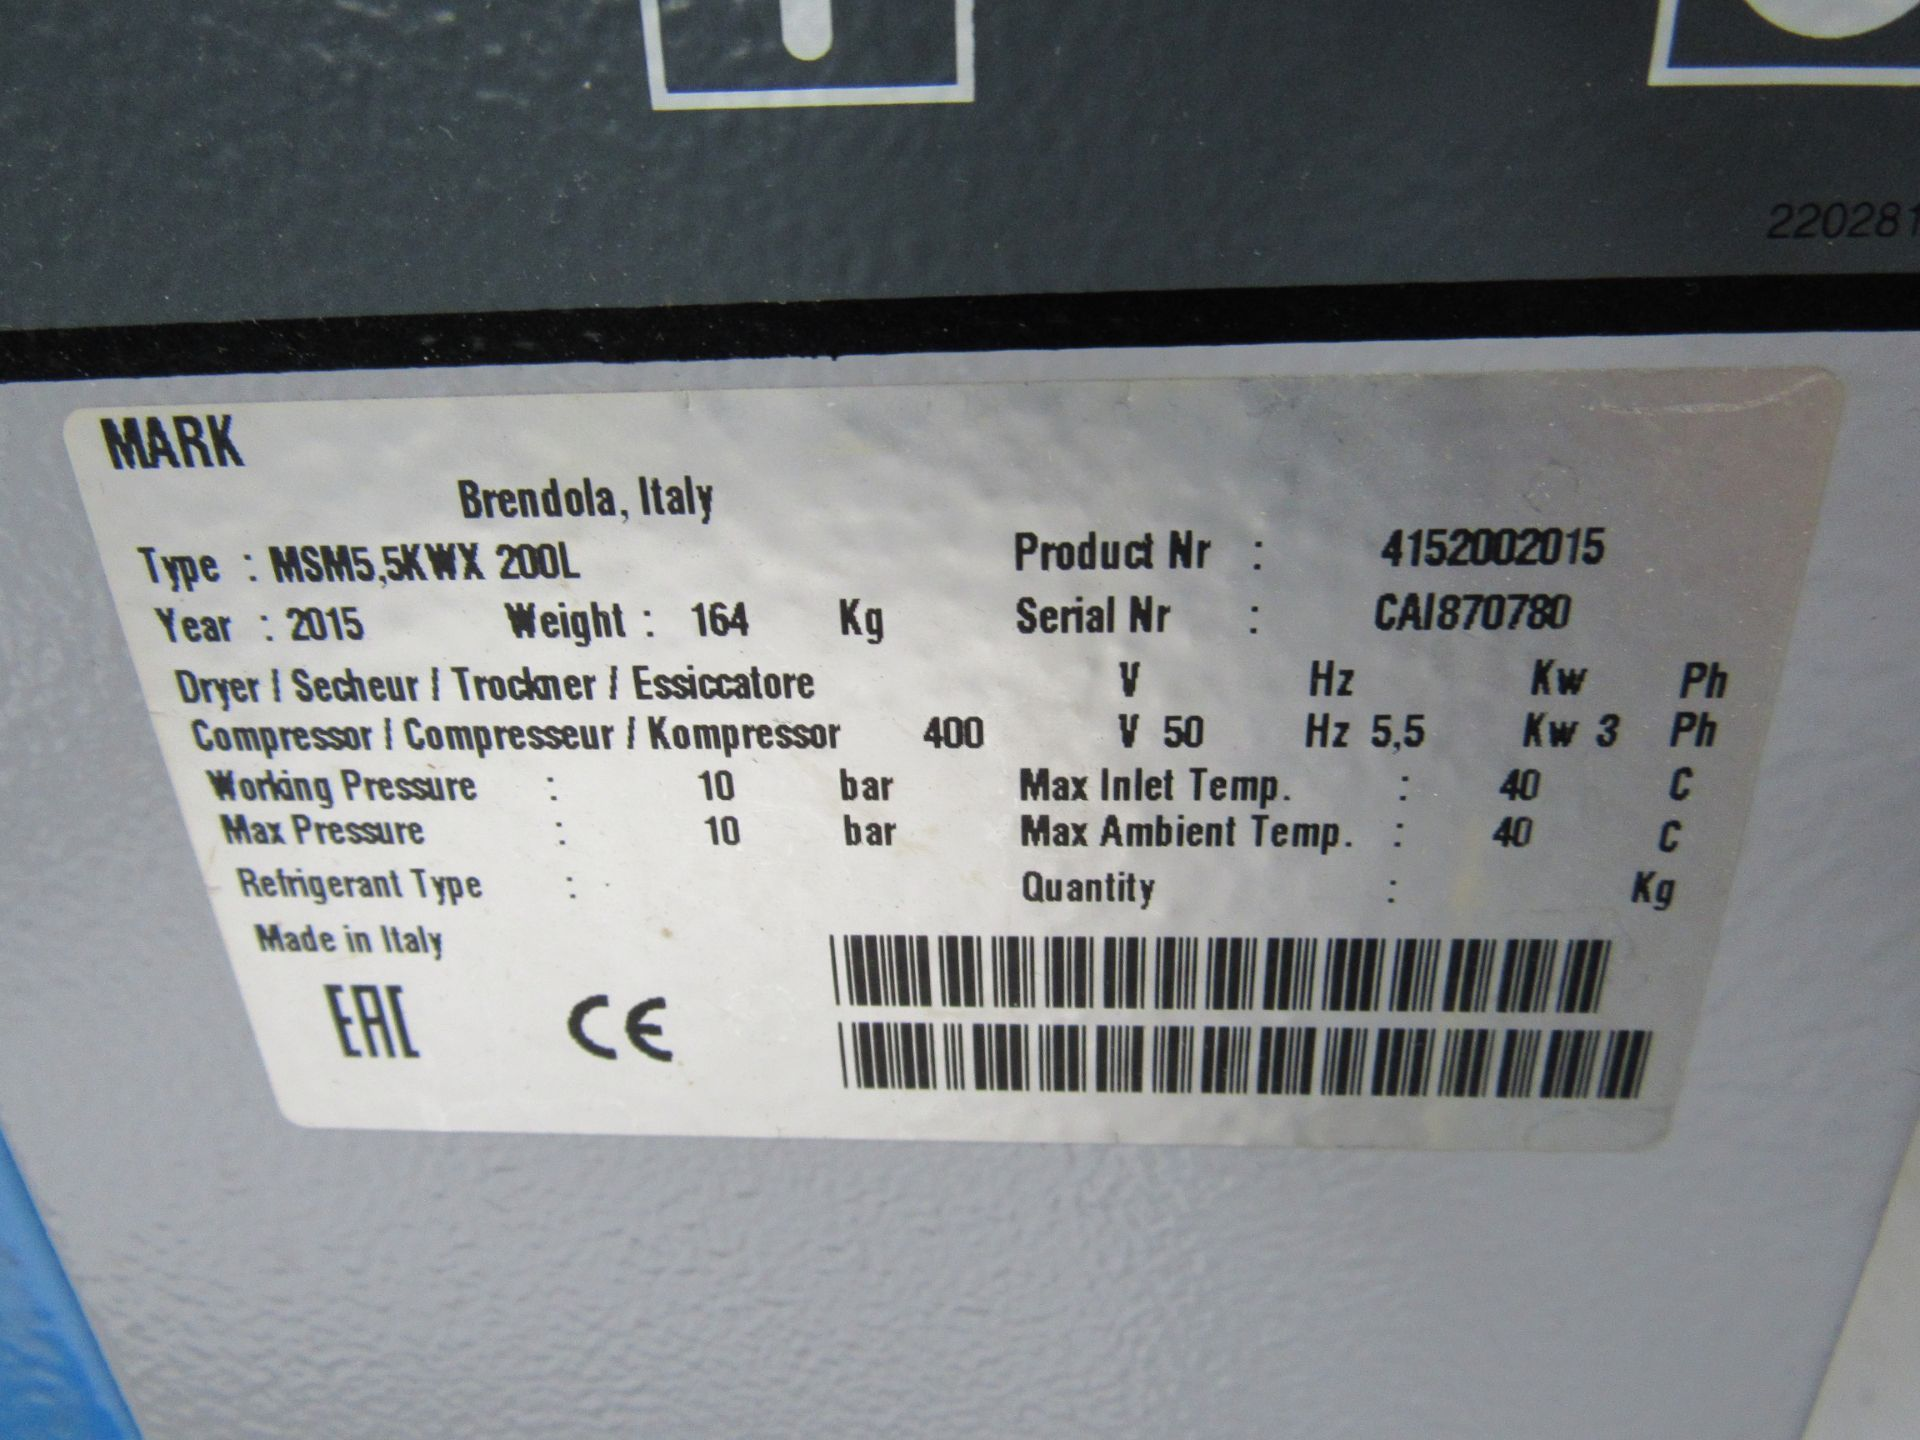 Mark MSM5, 5KWX, 200L Receiver Mounted Compressor with Air Drier Serial Number CA1870780 - Image 4 of 7